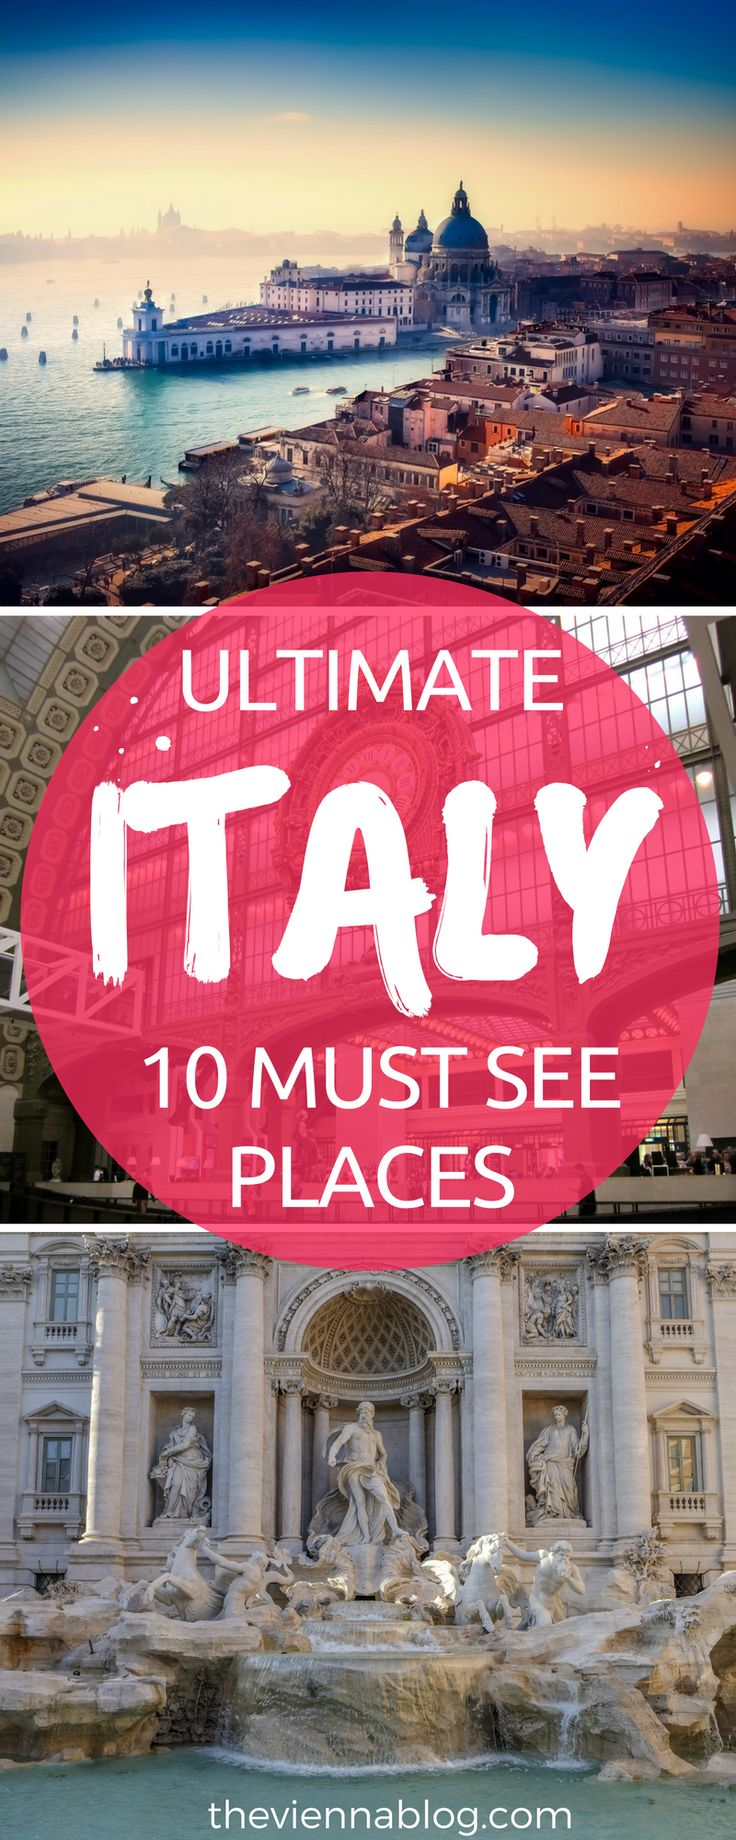 Italy Top things to do and see, Ultimate Travel Guide Italy #Venice #Italy #weloveitaly #Italian #bridges #Rome #LakeComo #Florence #Firenze #Trieste  #Italydestinations #Italytravel #italymipiace #gregsideris #theviennablog #Italyguide #venicetravelguide #Italytravelplaces #Italytraveltips #europe #Italyphotography